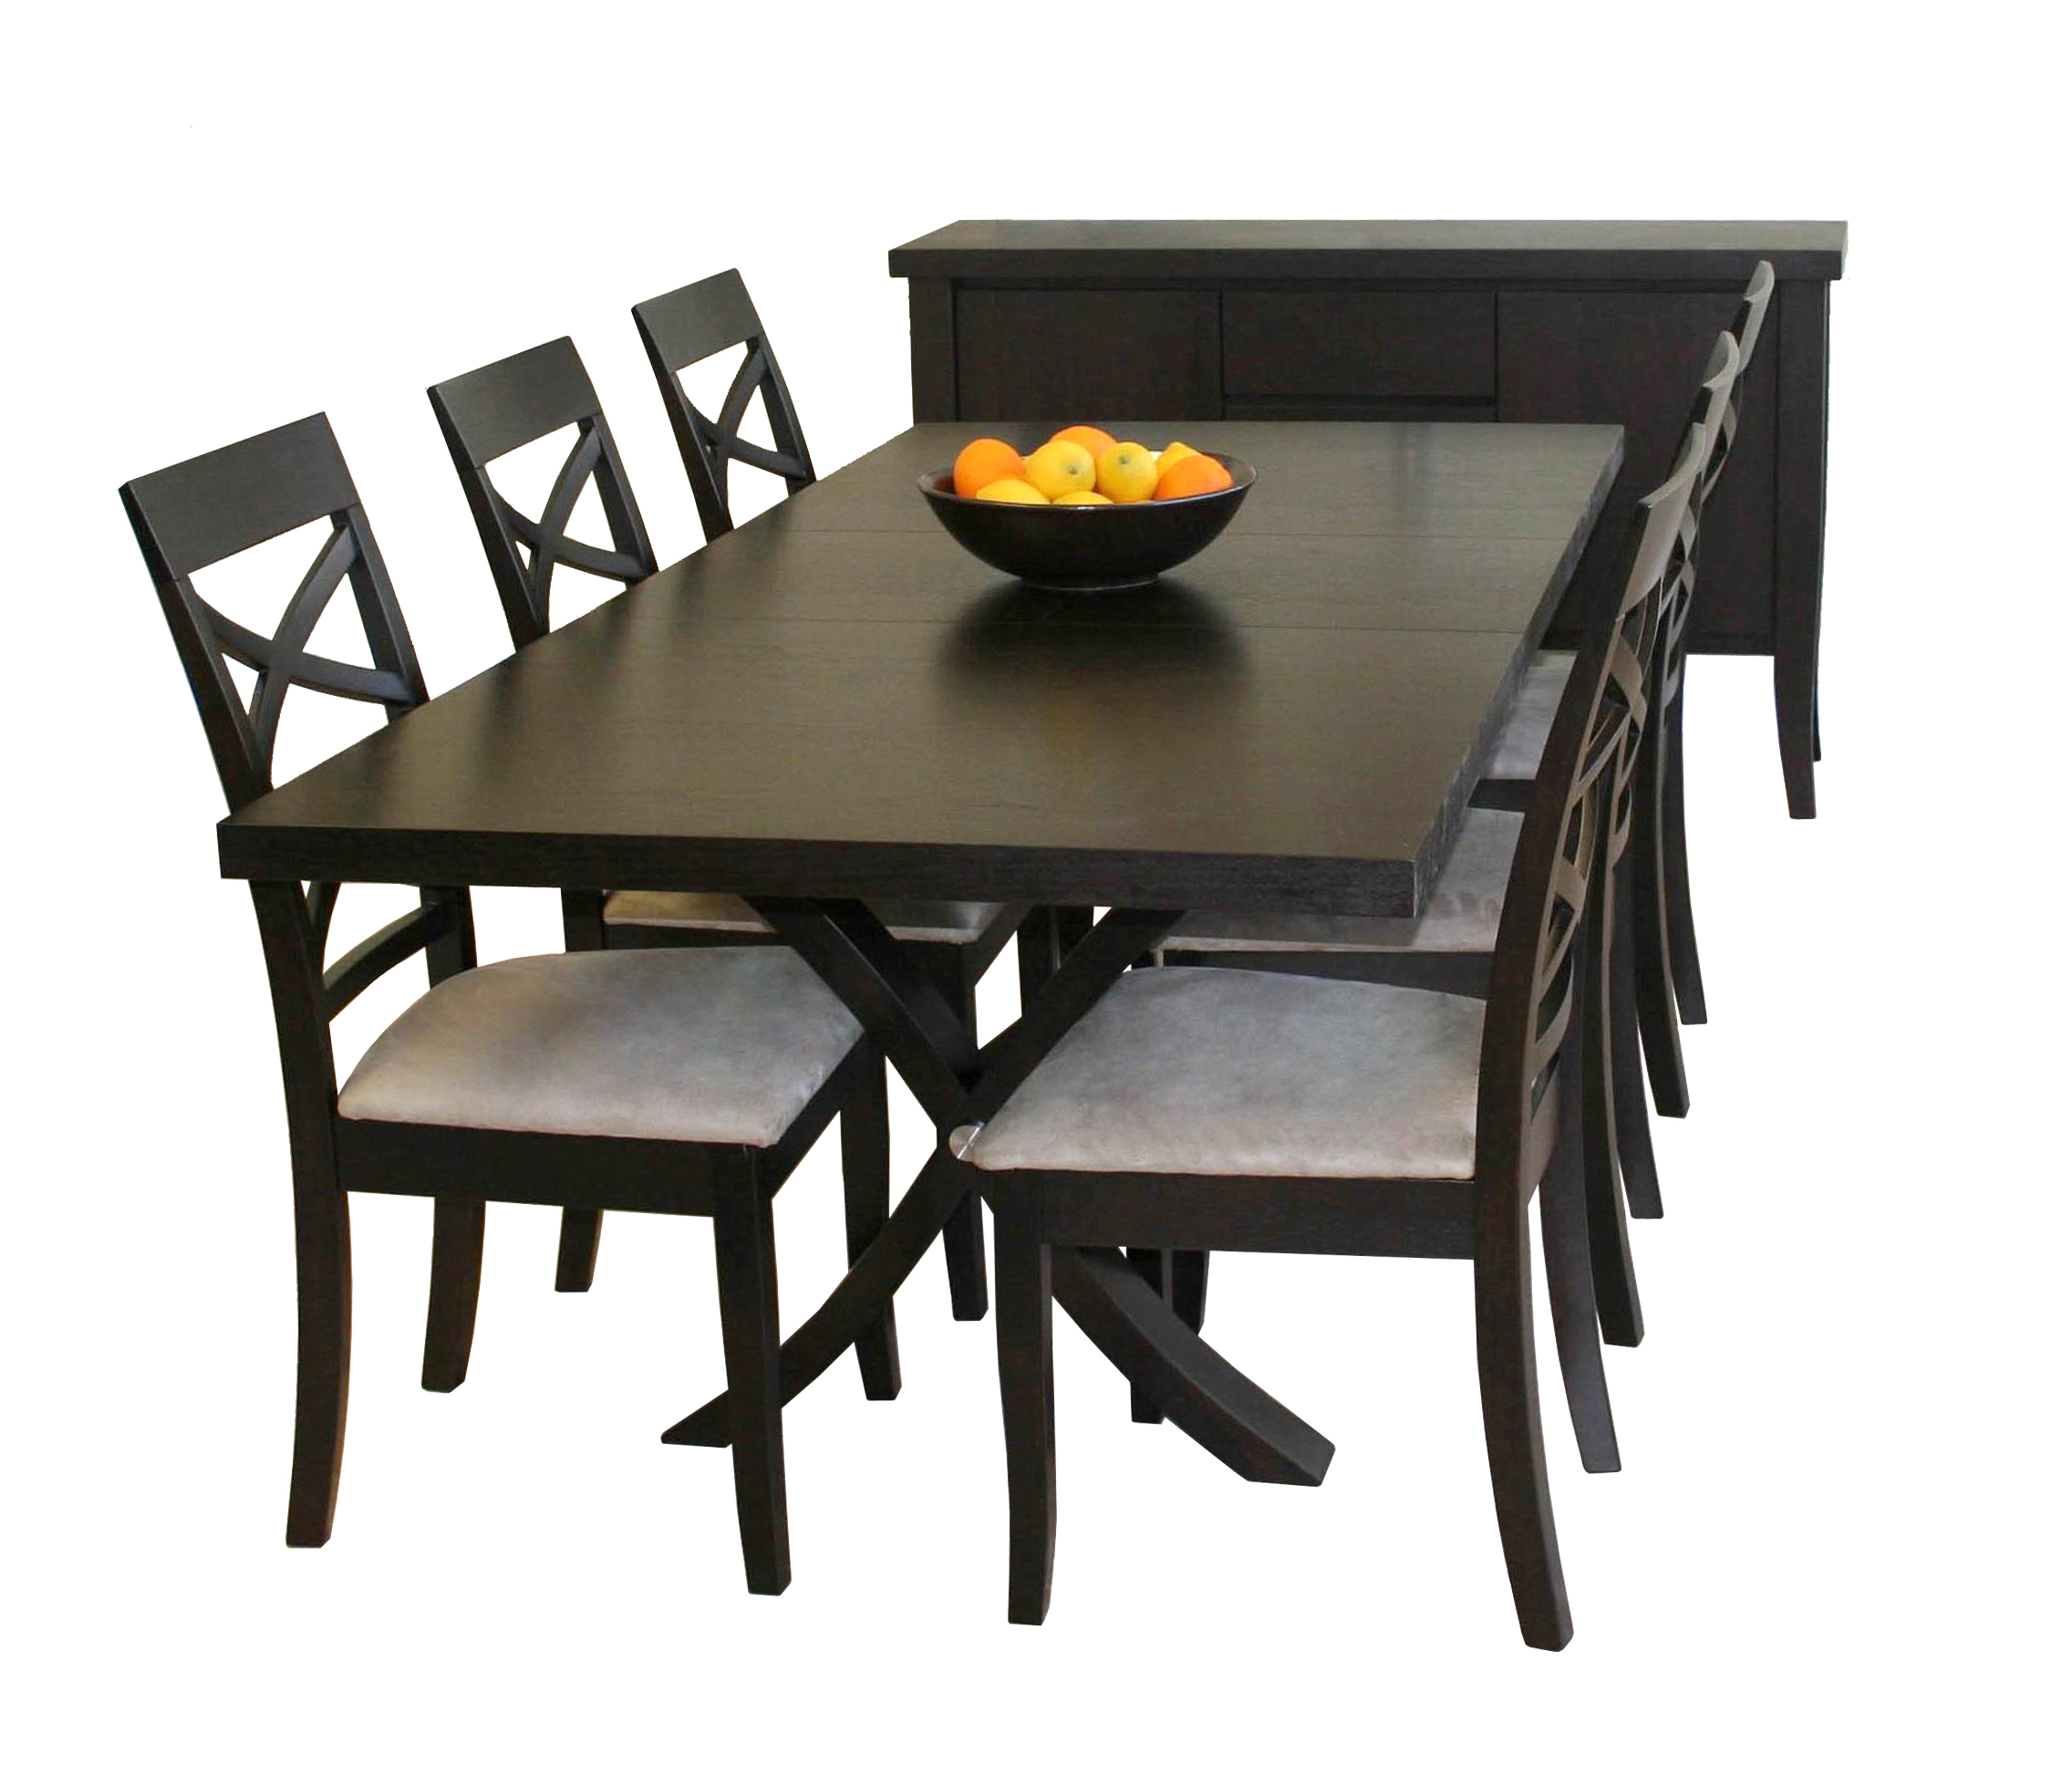 Furniture chandigarh panchkula haryana trendz wooden for Dining table images